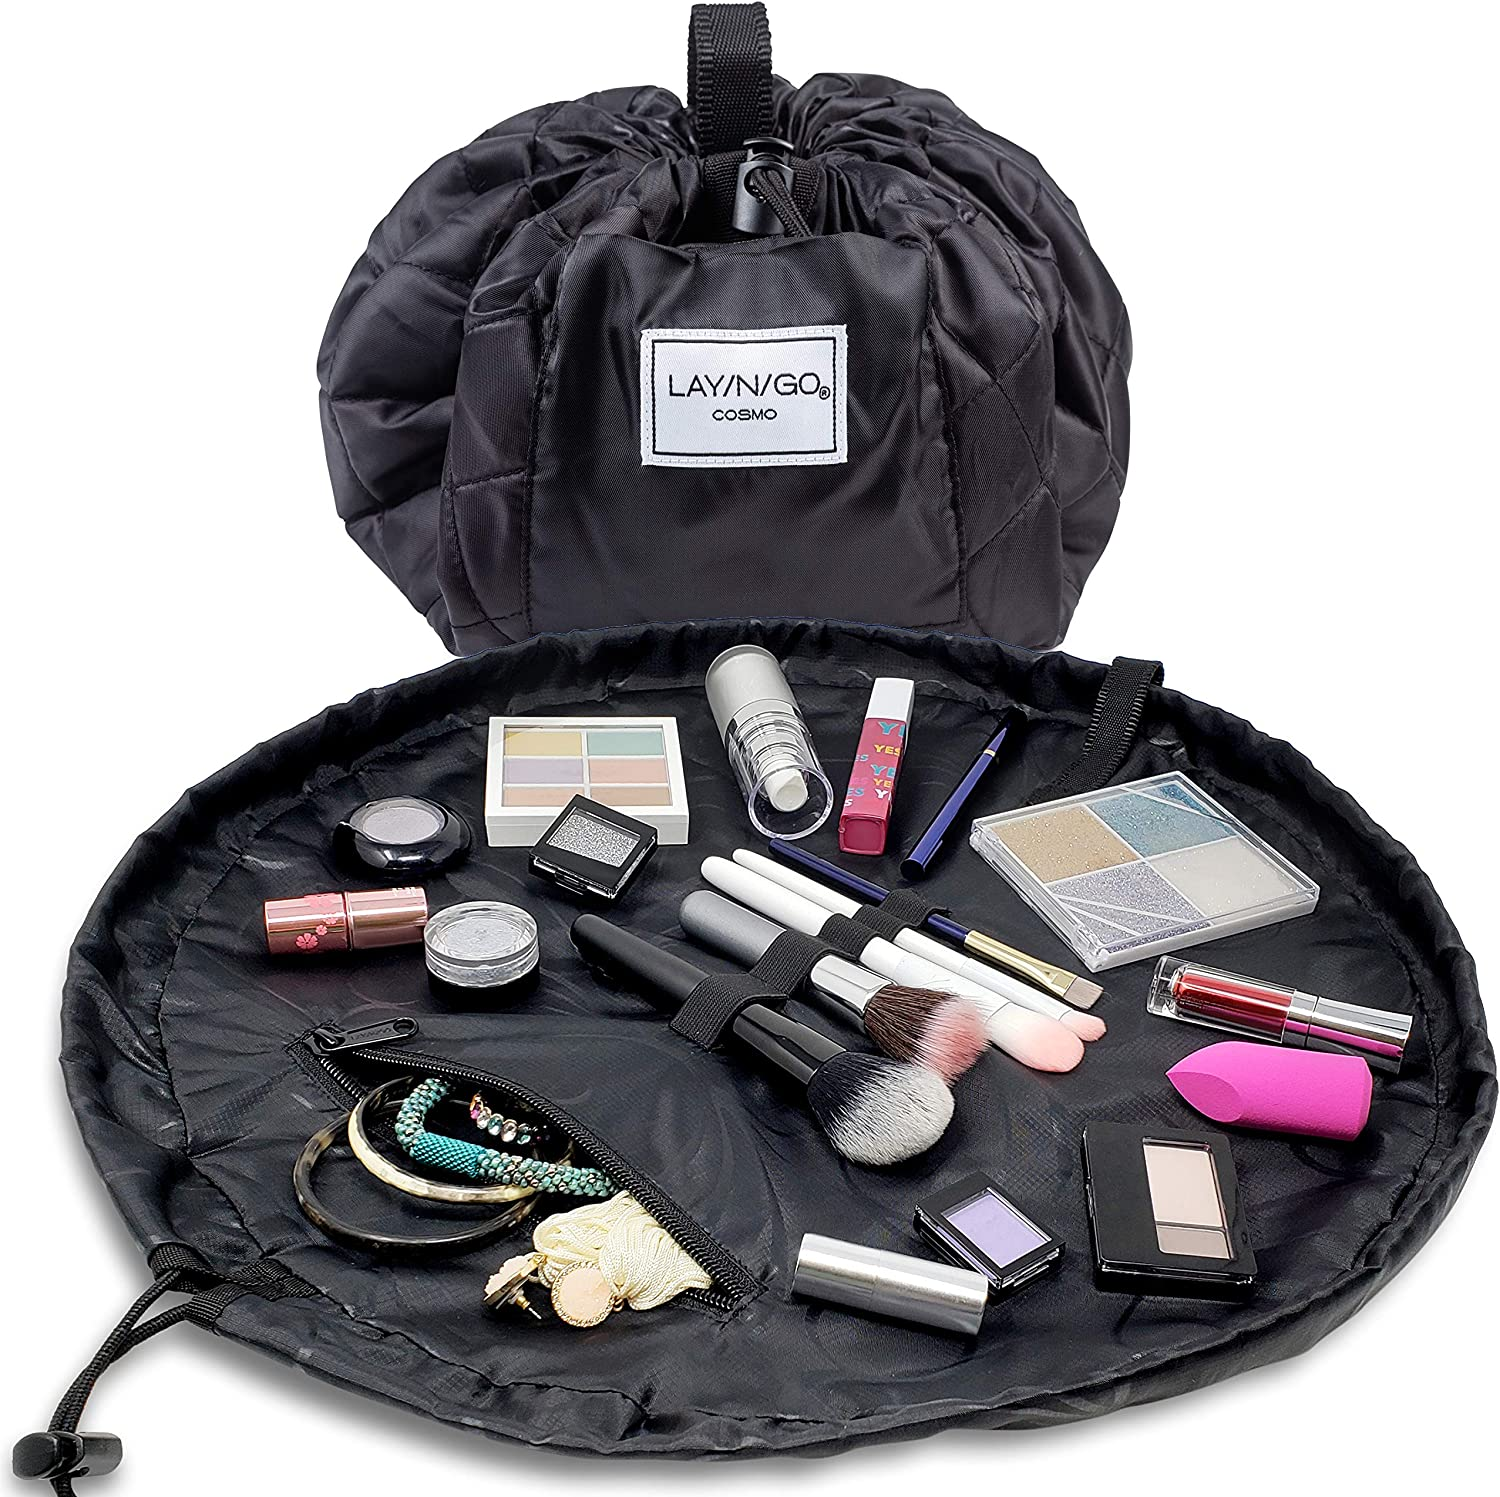 Lay-n-Go Drawstring Makeup Bag – Black, 20 inch - Travel Cosmetic Bag, Scrunch Sac Makeup Bag Opens Flat for Easy Access, Makeup Pouch, Durable and Stylish